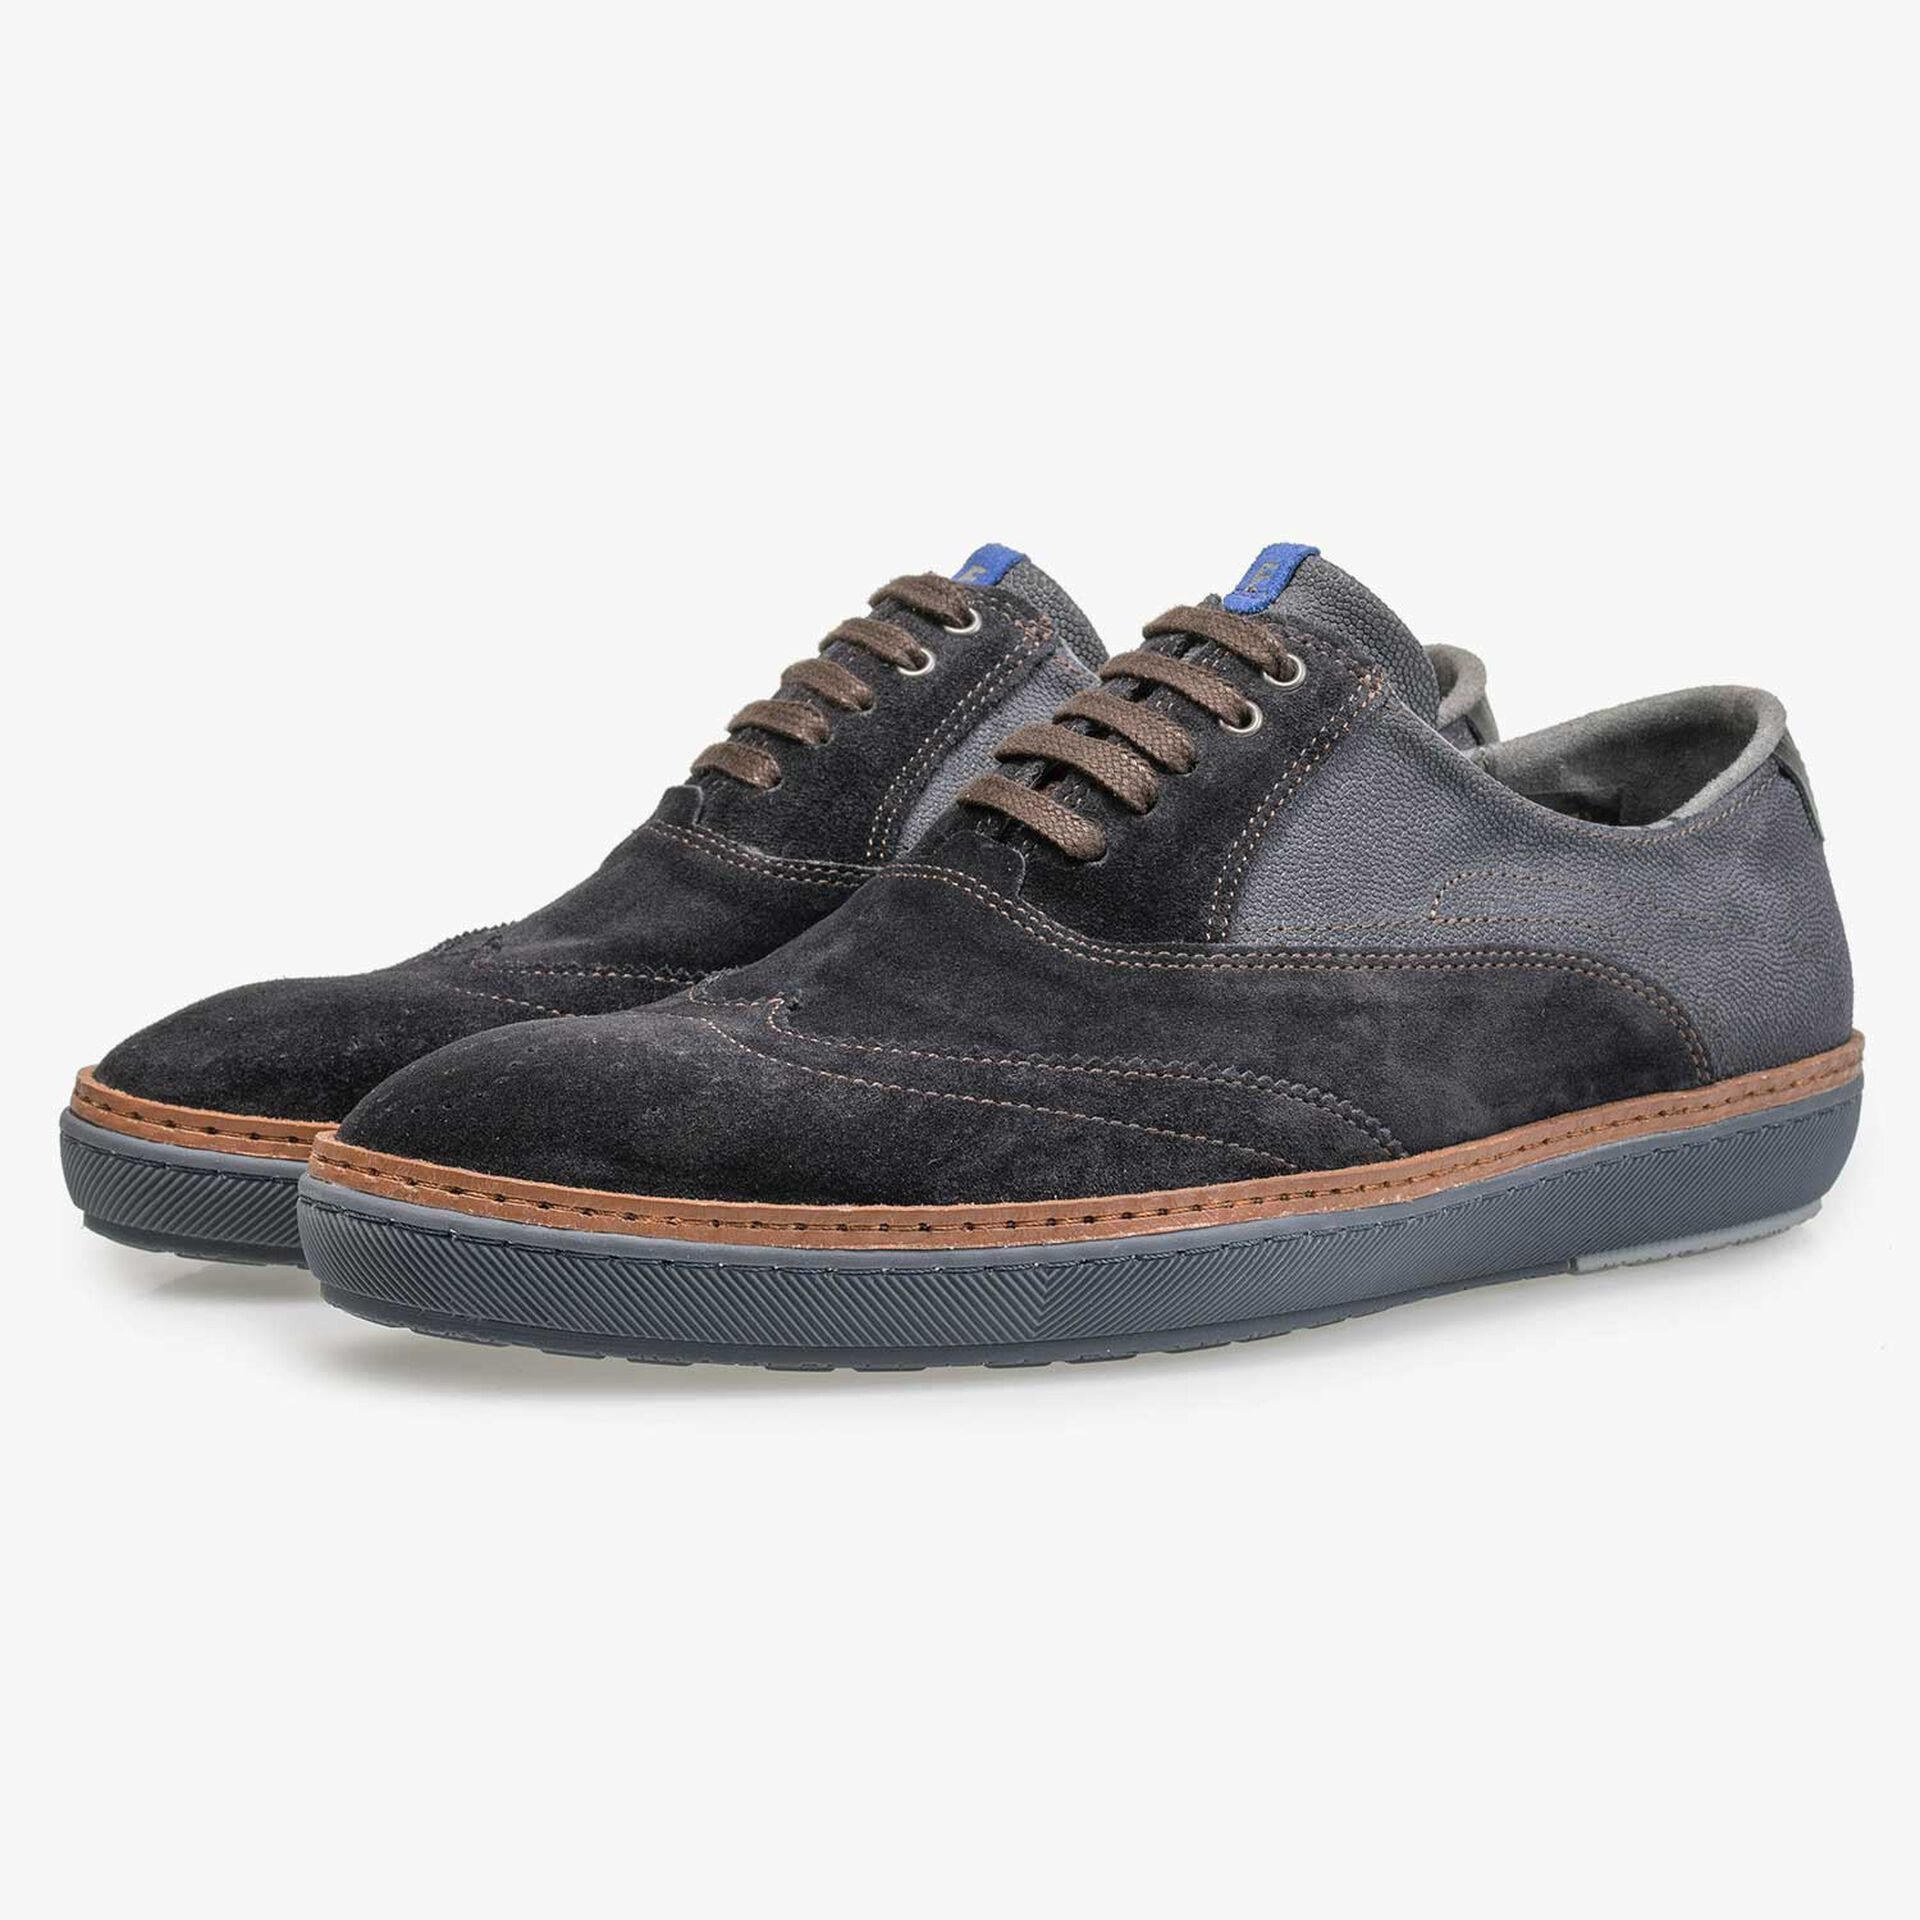 Calf's suede leather lace shoe with brogue details